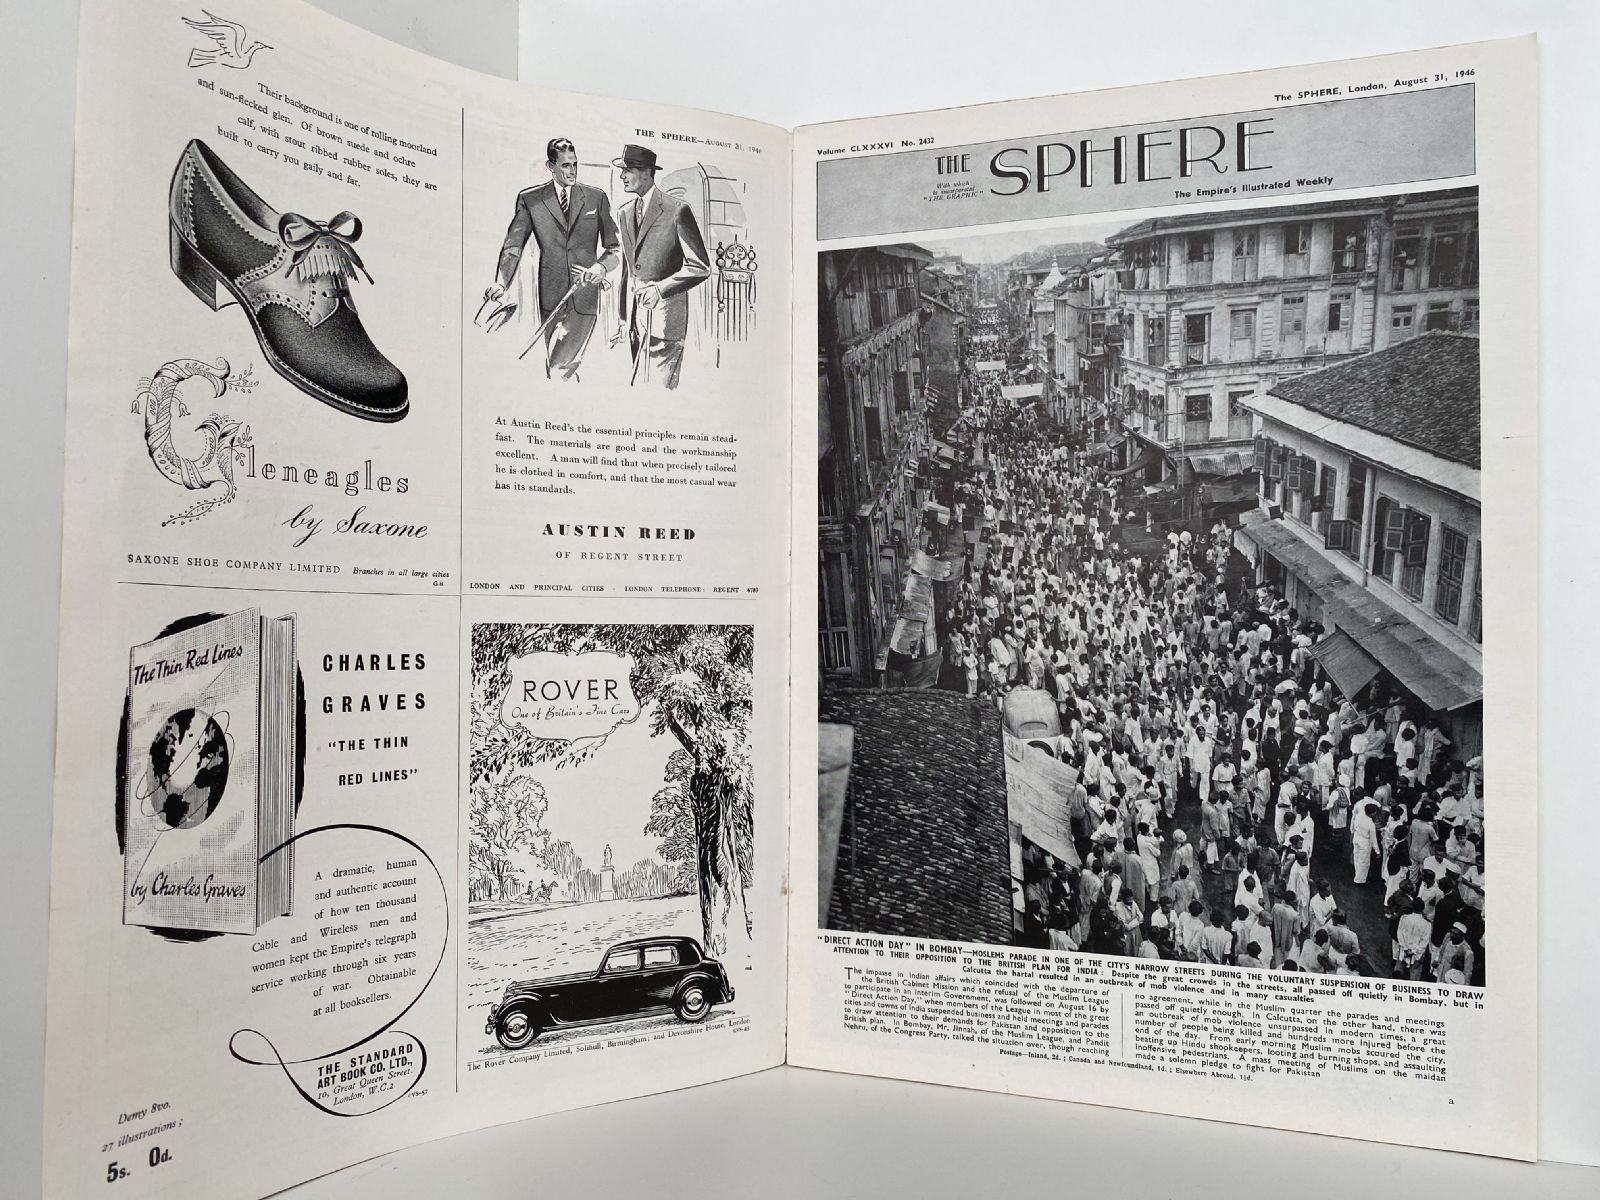 THE SPHERE The Empire's Illustrated Weekly. August 31 1946. No. 2432